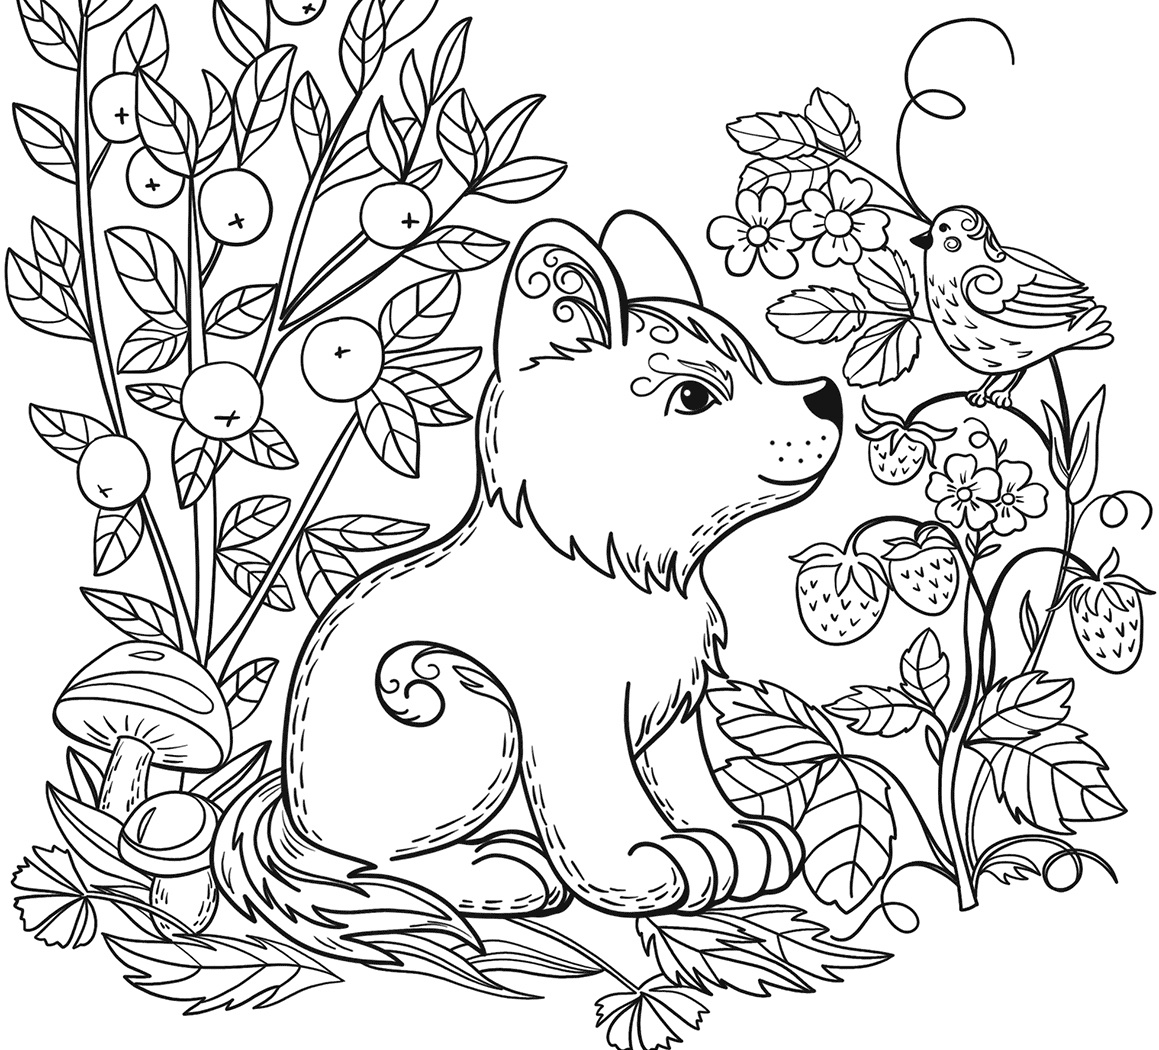 Coloring Ideas : Wild Animal Coloring Sheets Image Inspirations Free - Free Printable Wild Animal Coloring Pages